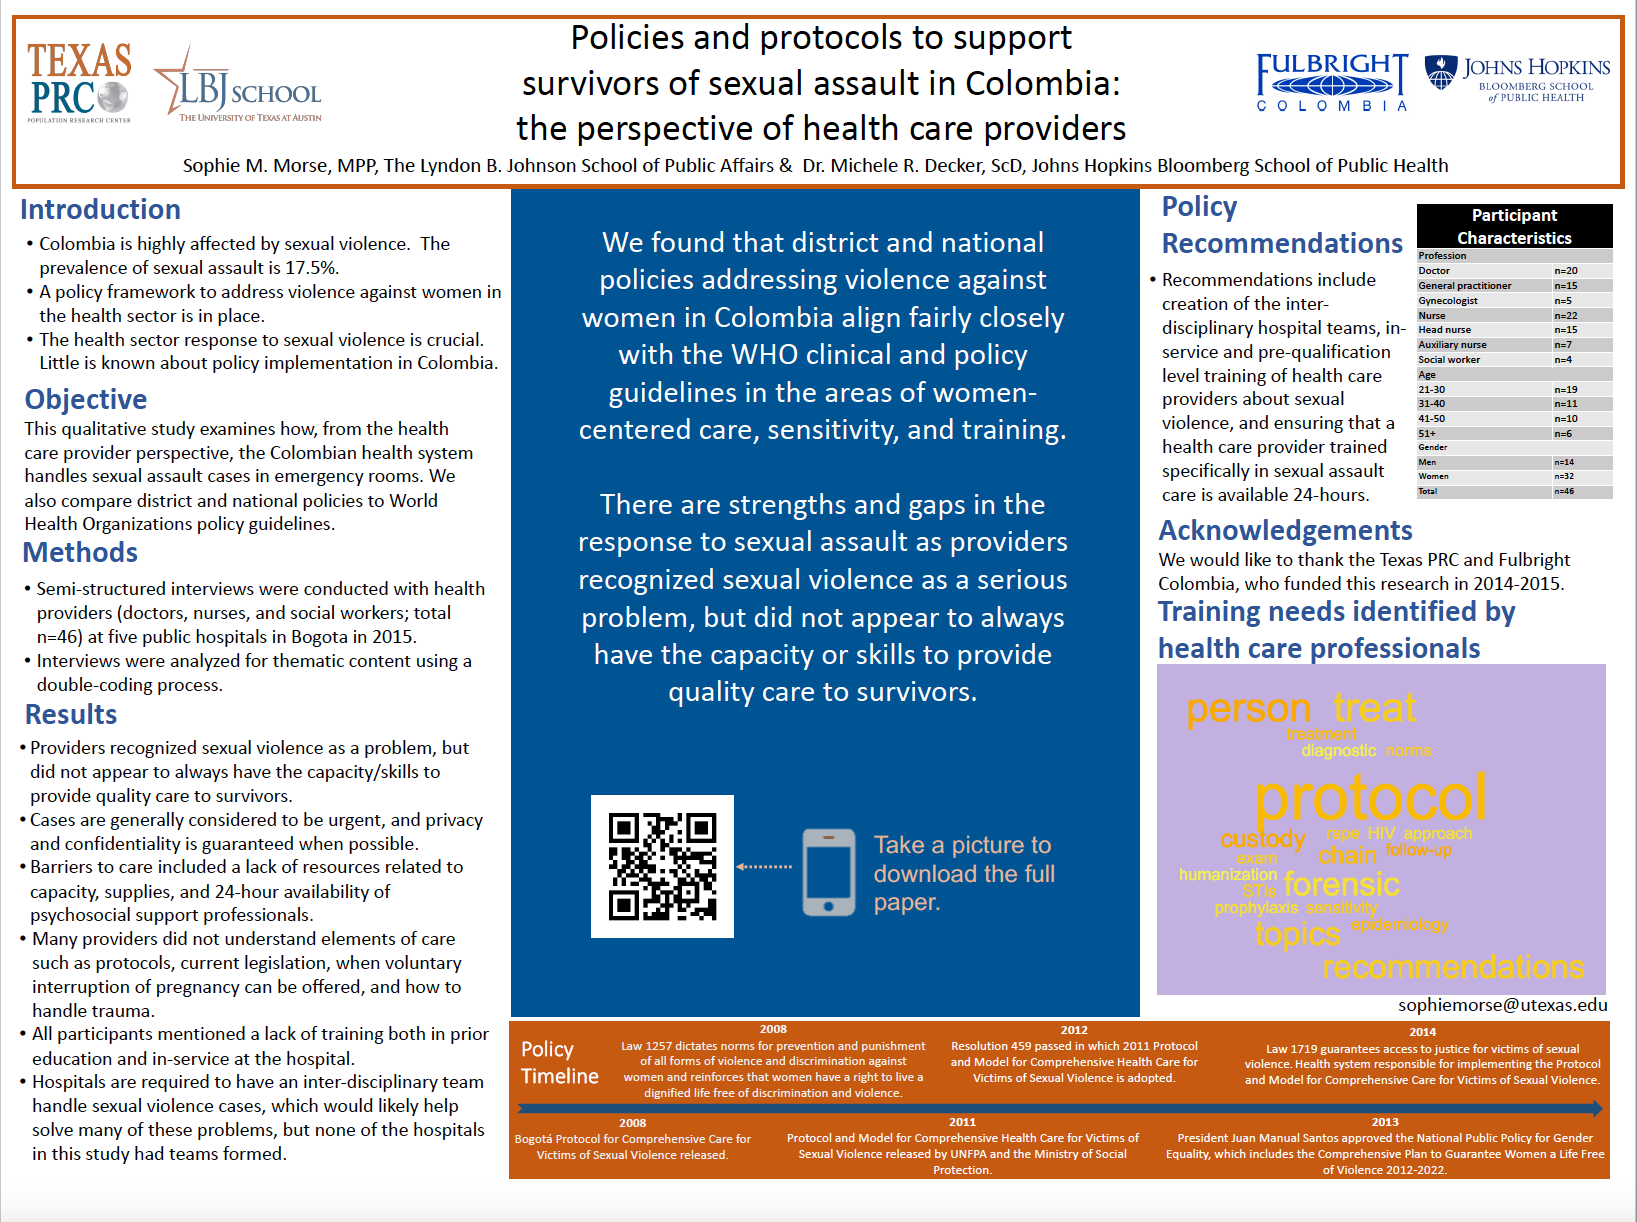 Innovation Bound 2019 research poster: Supporting survivors of sexual assault in Colombia